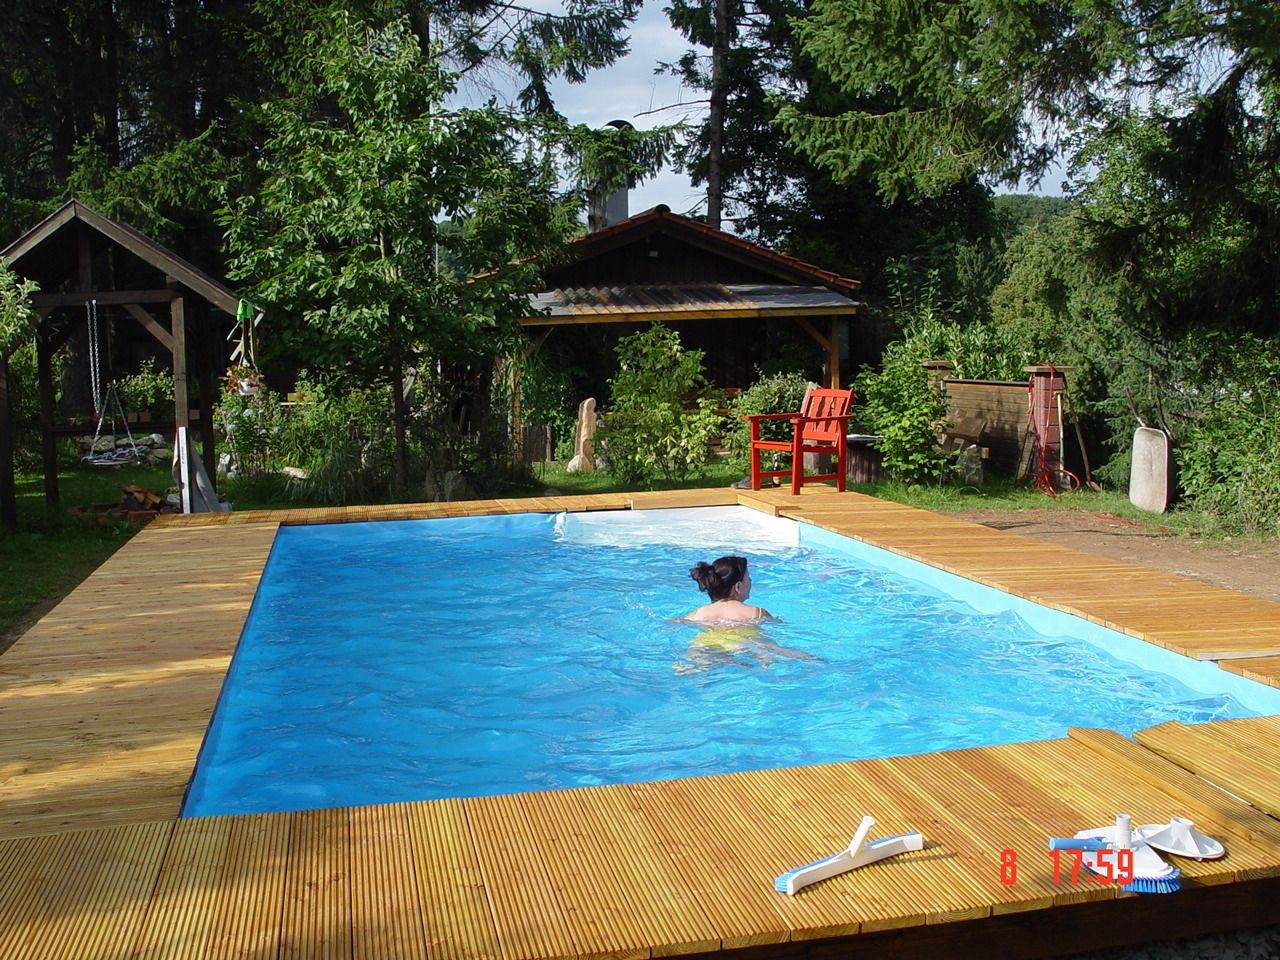 Pool Im Garten Intex Pool Mauern Fertig Inspirationen In 2019 Pinterest